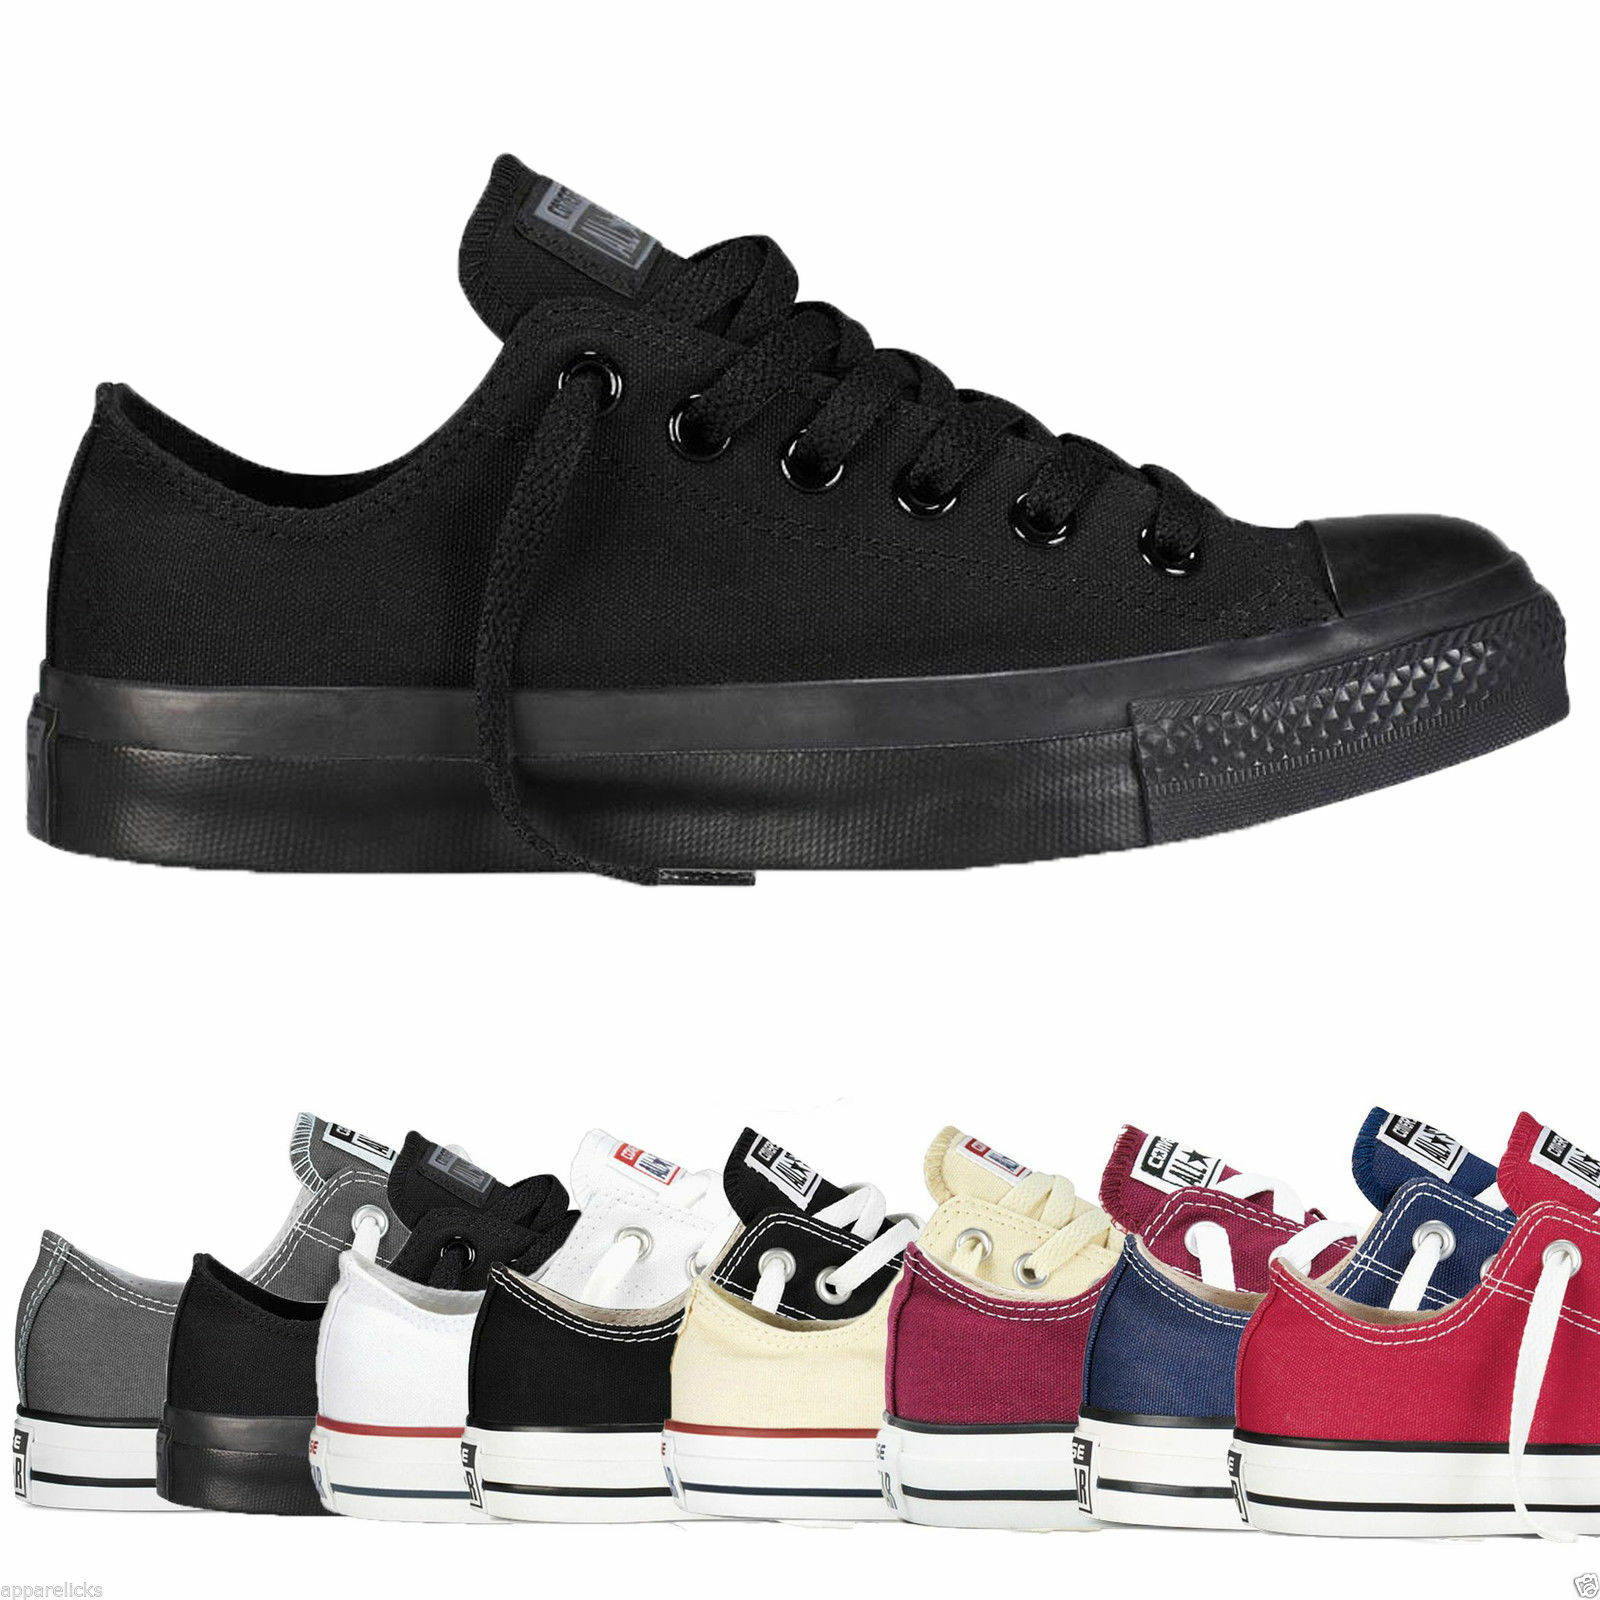 converse chuck taylor all star low tops mens womens unisex. Black Bedroom Furniture Sets. Home Design Ideas